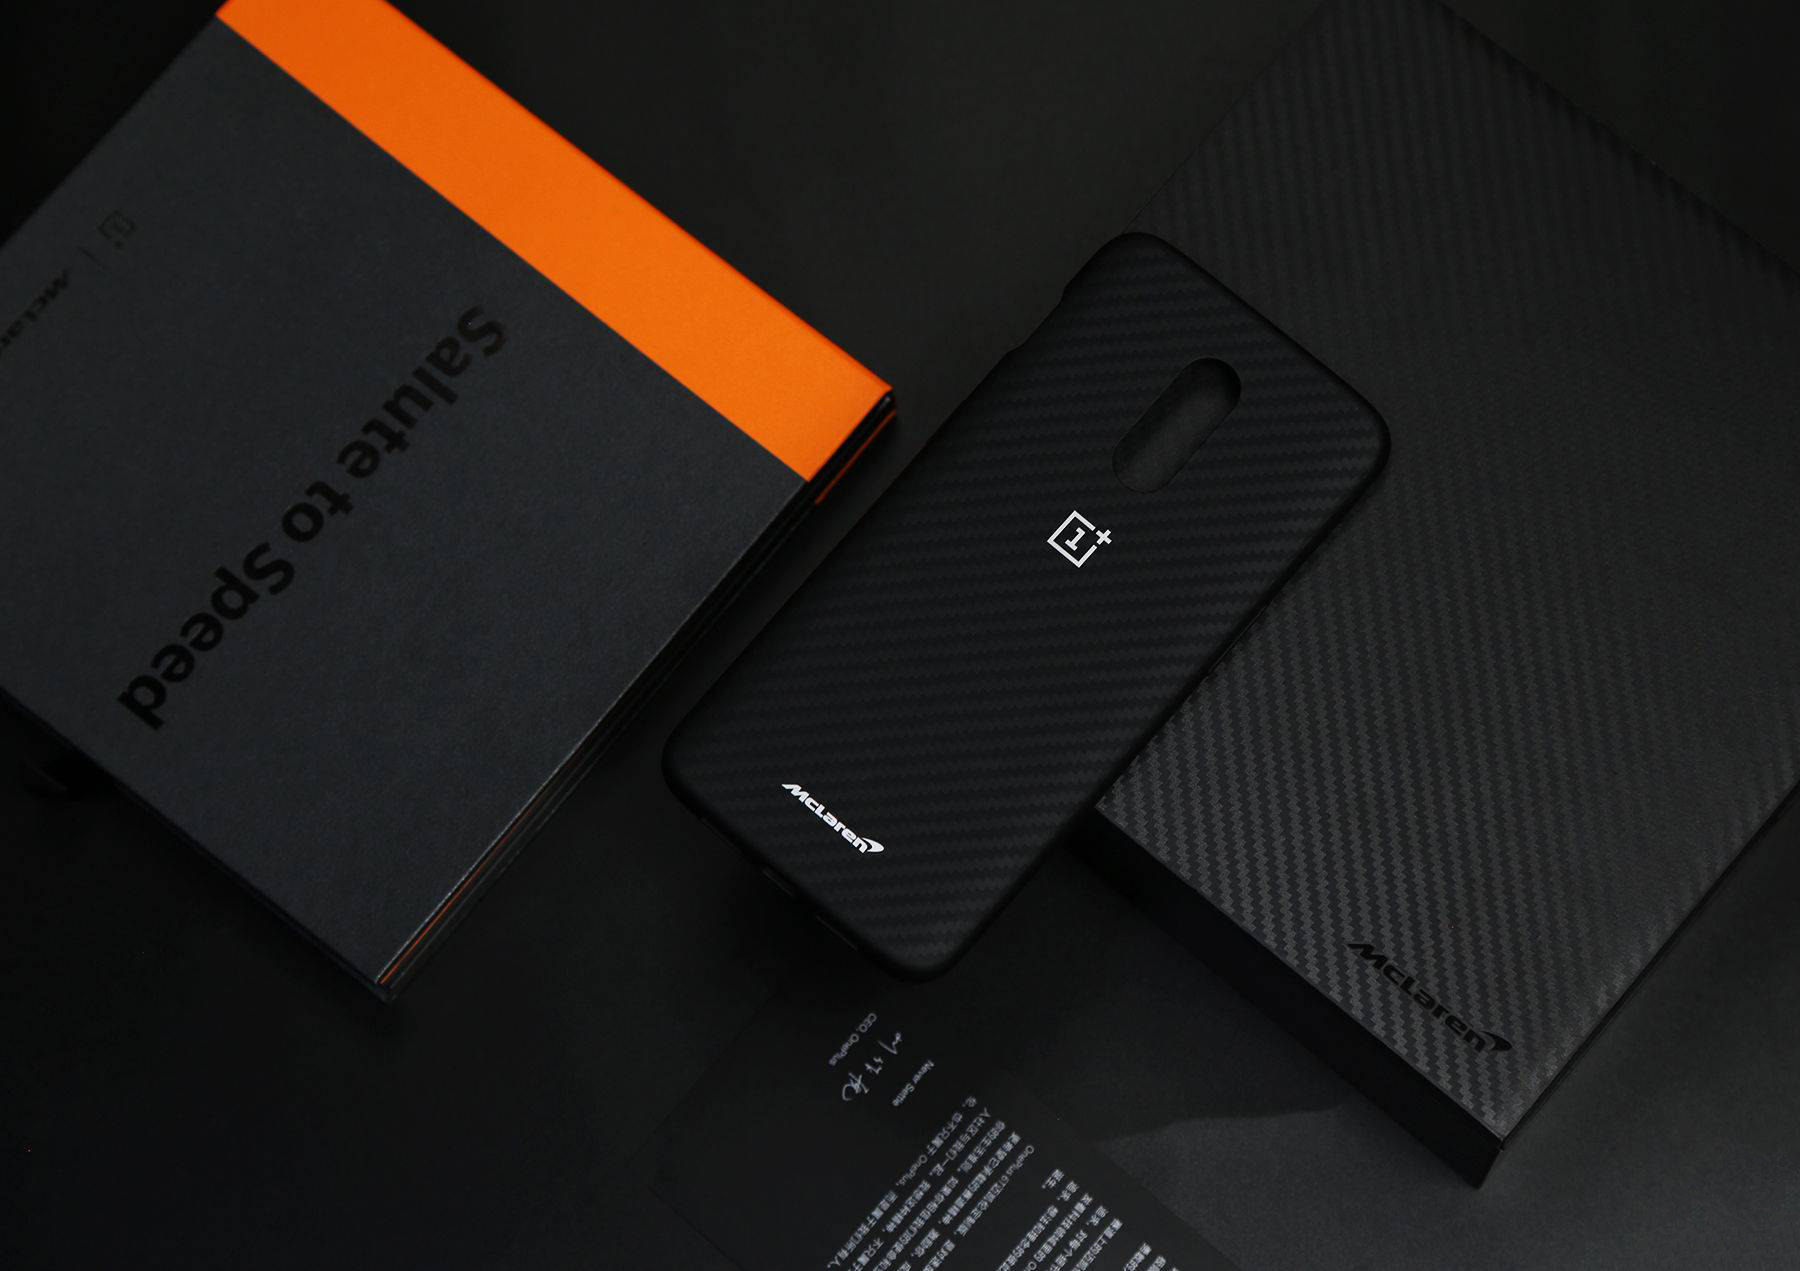 One plus 6T McLaren custom version out of the box